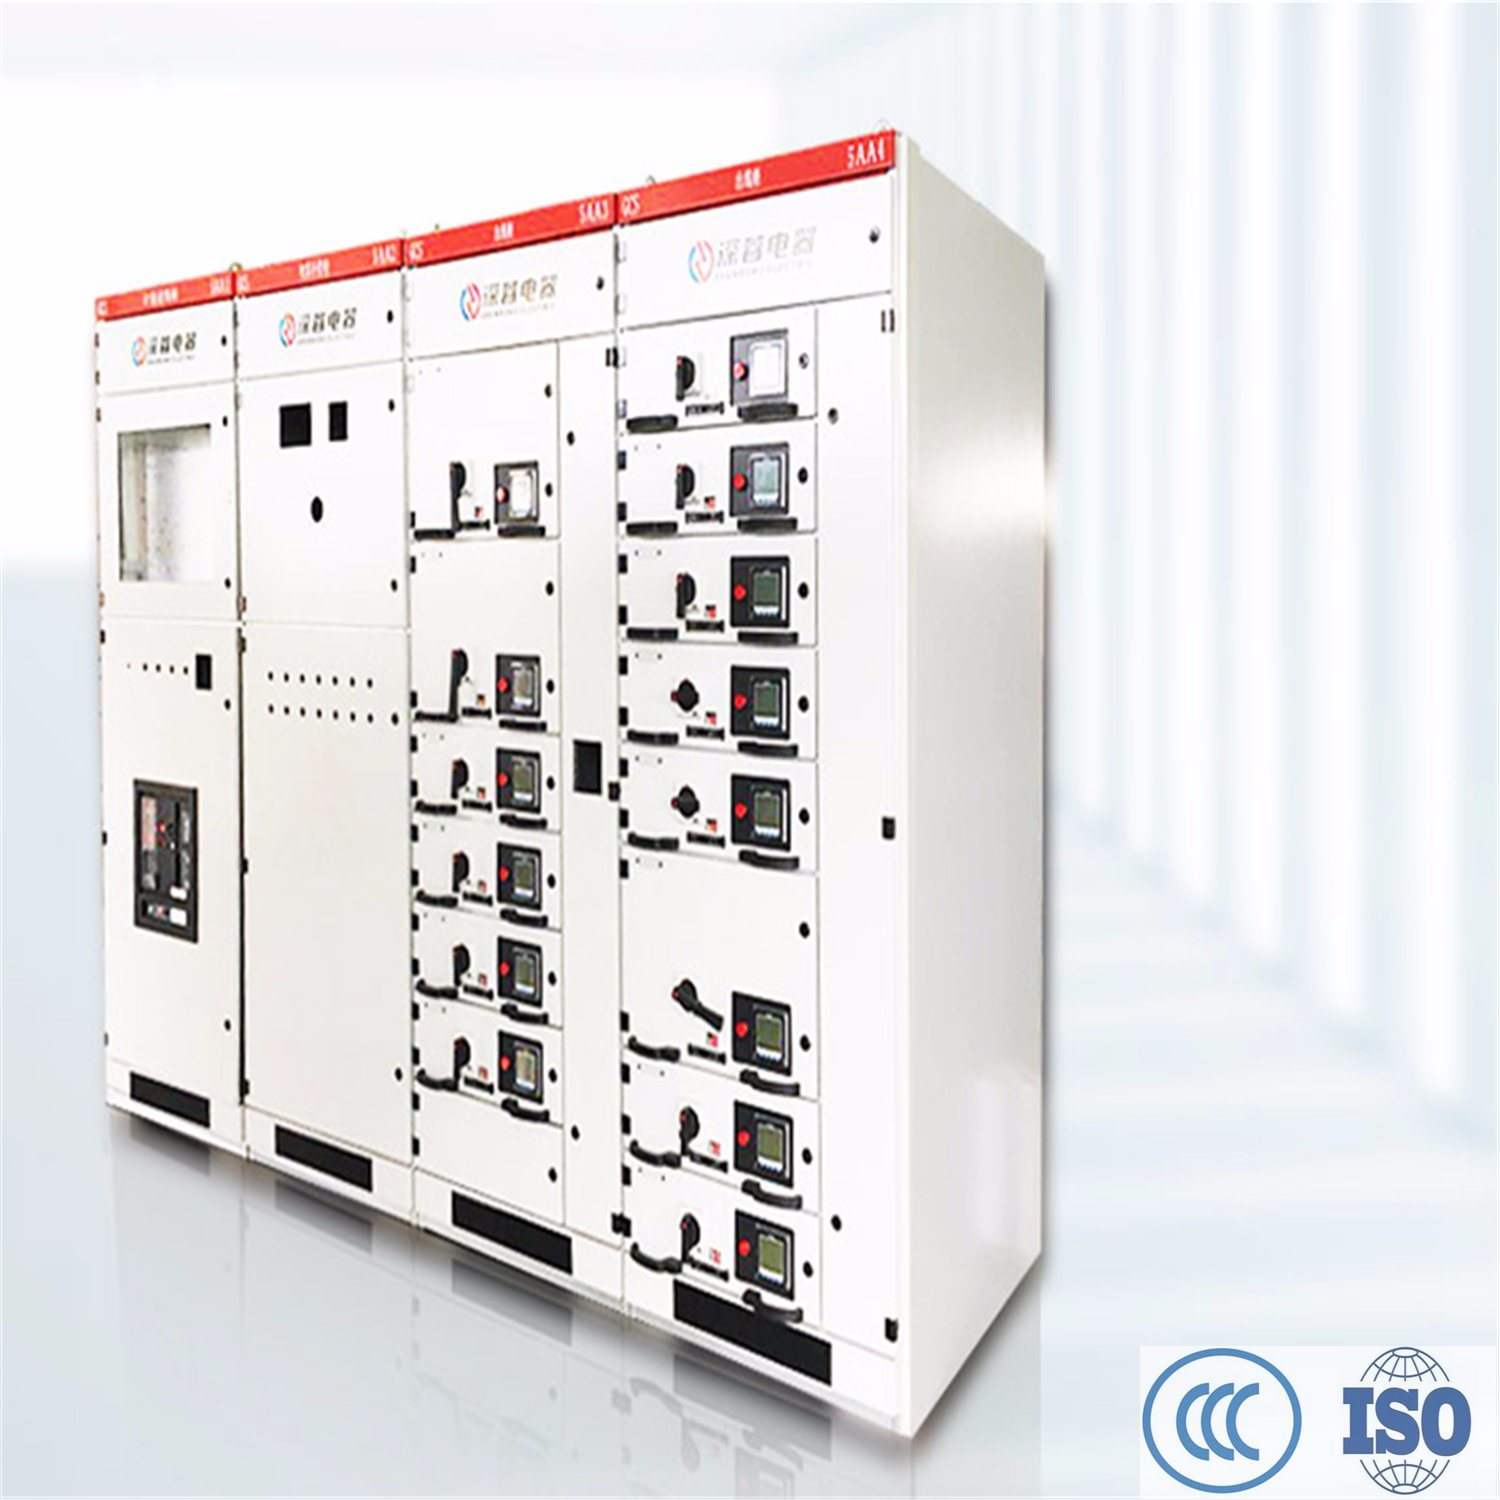 [Hot Item] Soft Starter Switchgear Custom-Made with ABB, Ge, Schneider, on led circuit diagrams, internet of things diagrams, electrical diagrams, series and parallel circuits diagrams, electronic circuit diagrams, troubleshooting diagrams, engine diagrams, pinout diagrams, transformer diagrams, smart car diagrams, hvac diagrams, gmc fuse box diagrams, motor diagrams, battery diagrams, friendship bracelet diagrams, sincgars radio configurations diagrams, switch diagrams, lighting diagrams, honda motorcycle repair diagrams,